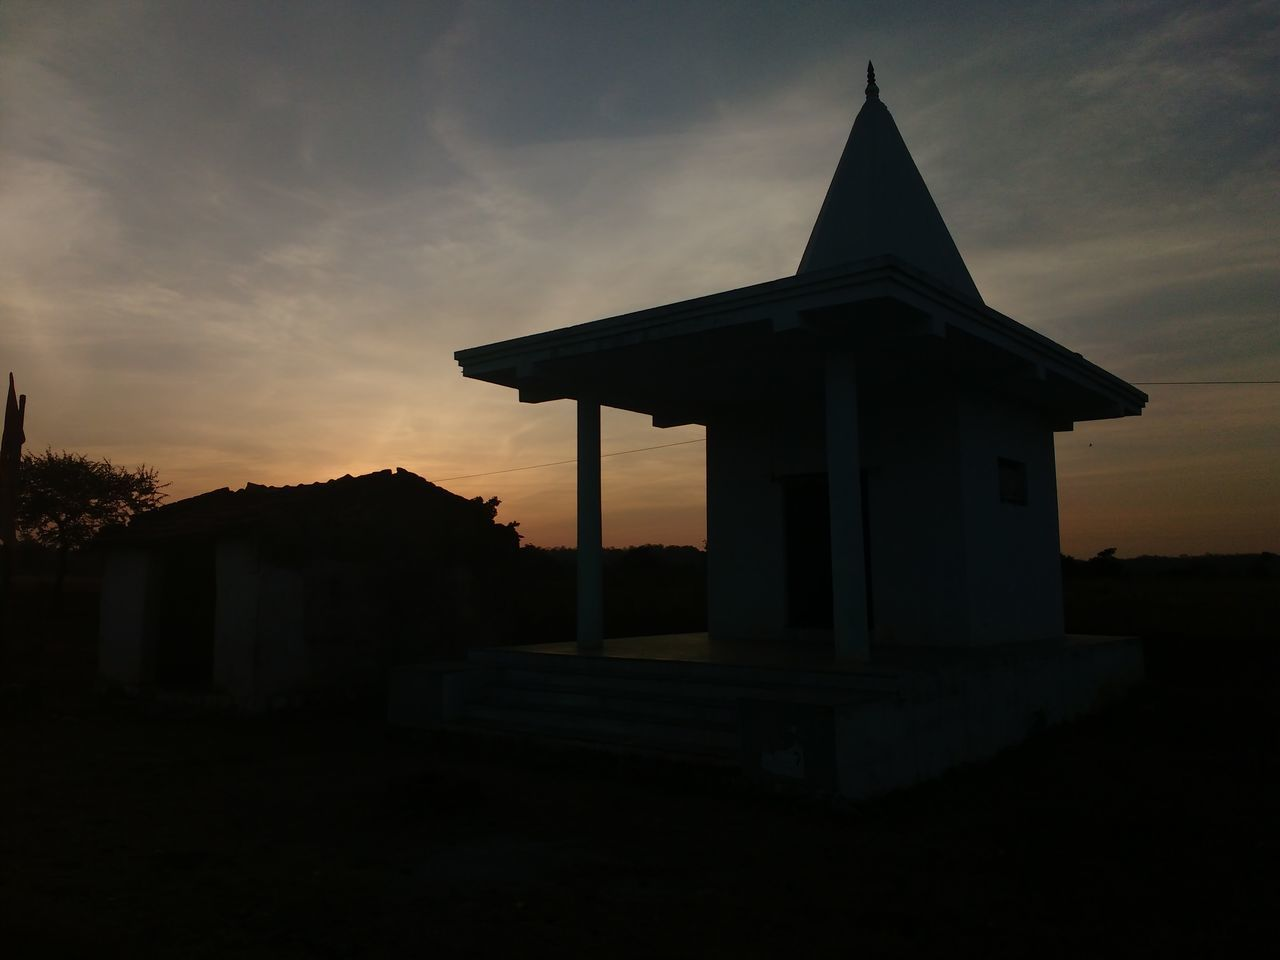 sunset, architecture, built structure, sky, silhouette, building exterior, cloud - sky, no people, outdoors, nature, day